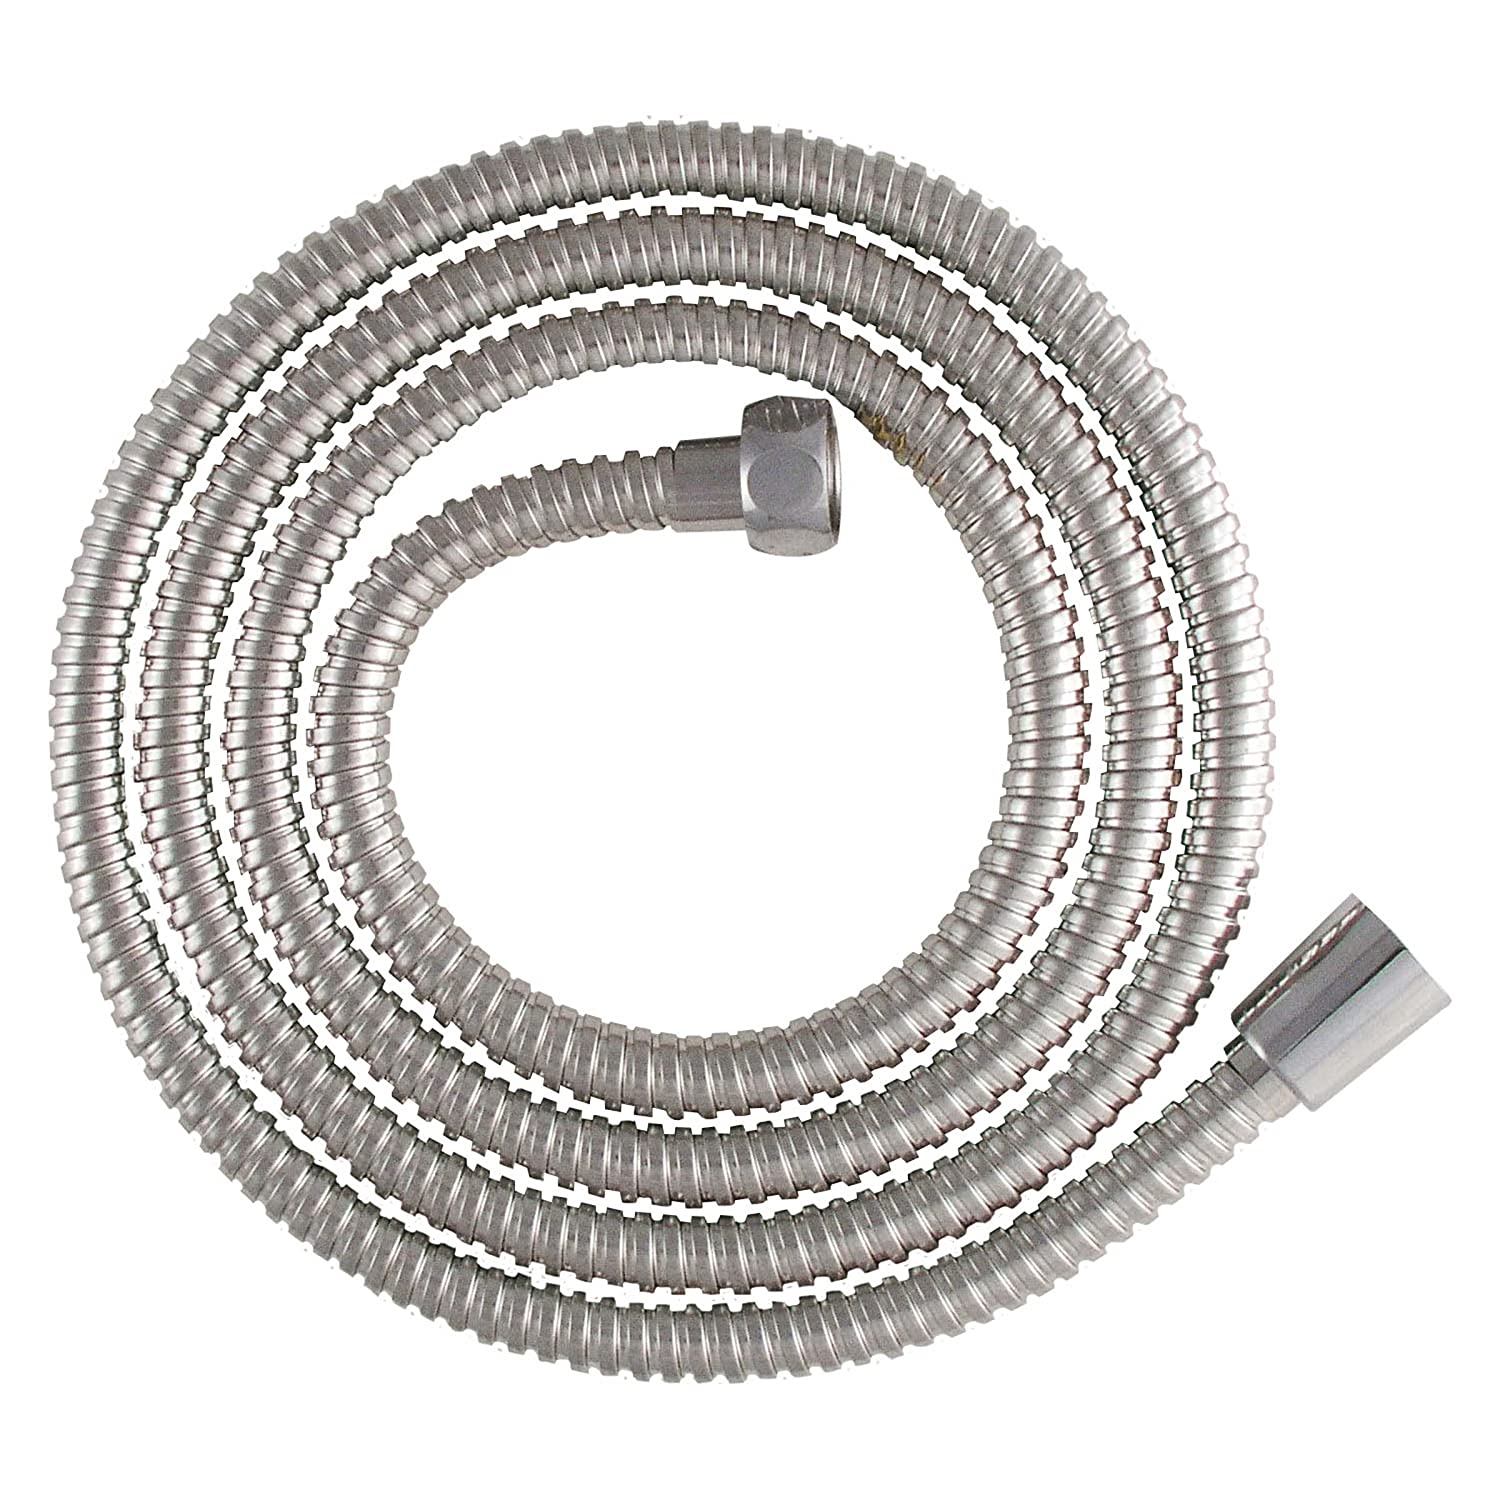 LDR 520 2405SS Replacement Flexible 60-84-Inch Handheld Shower ...